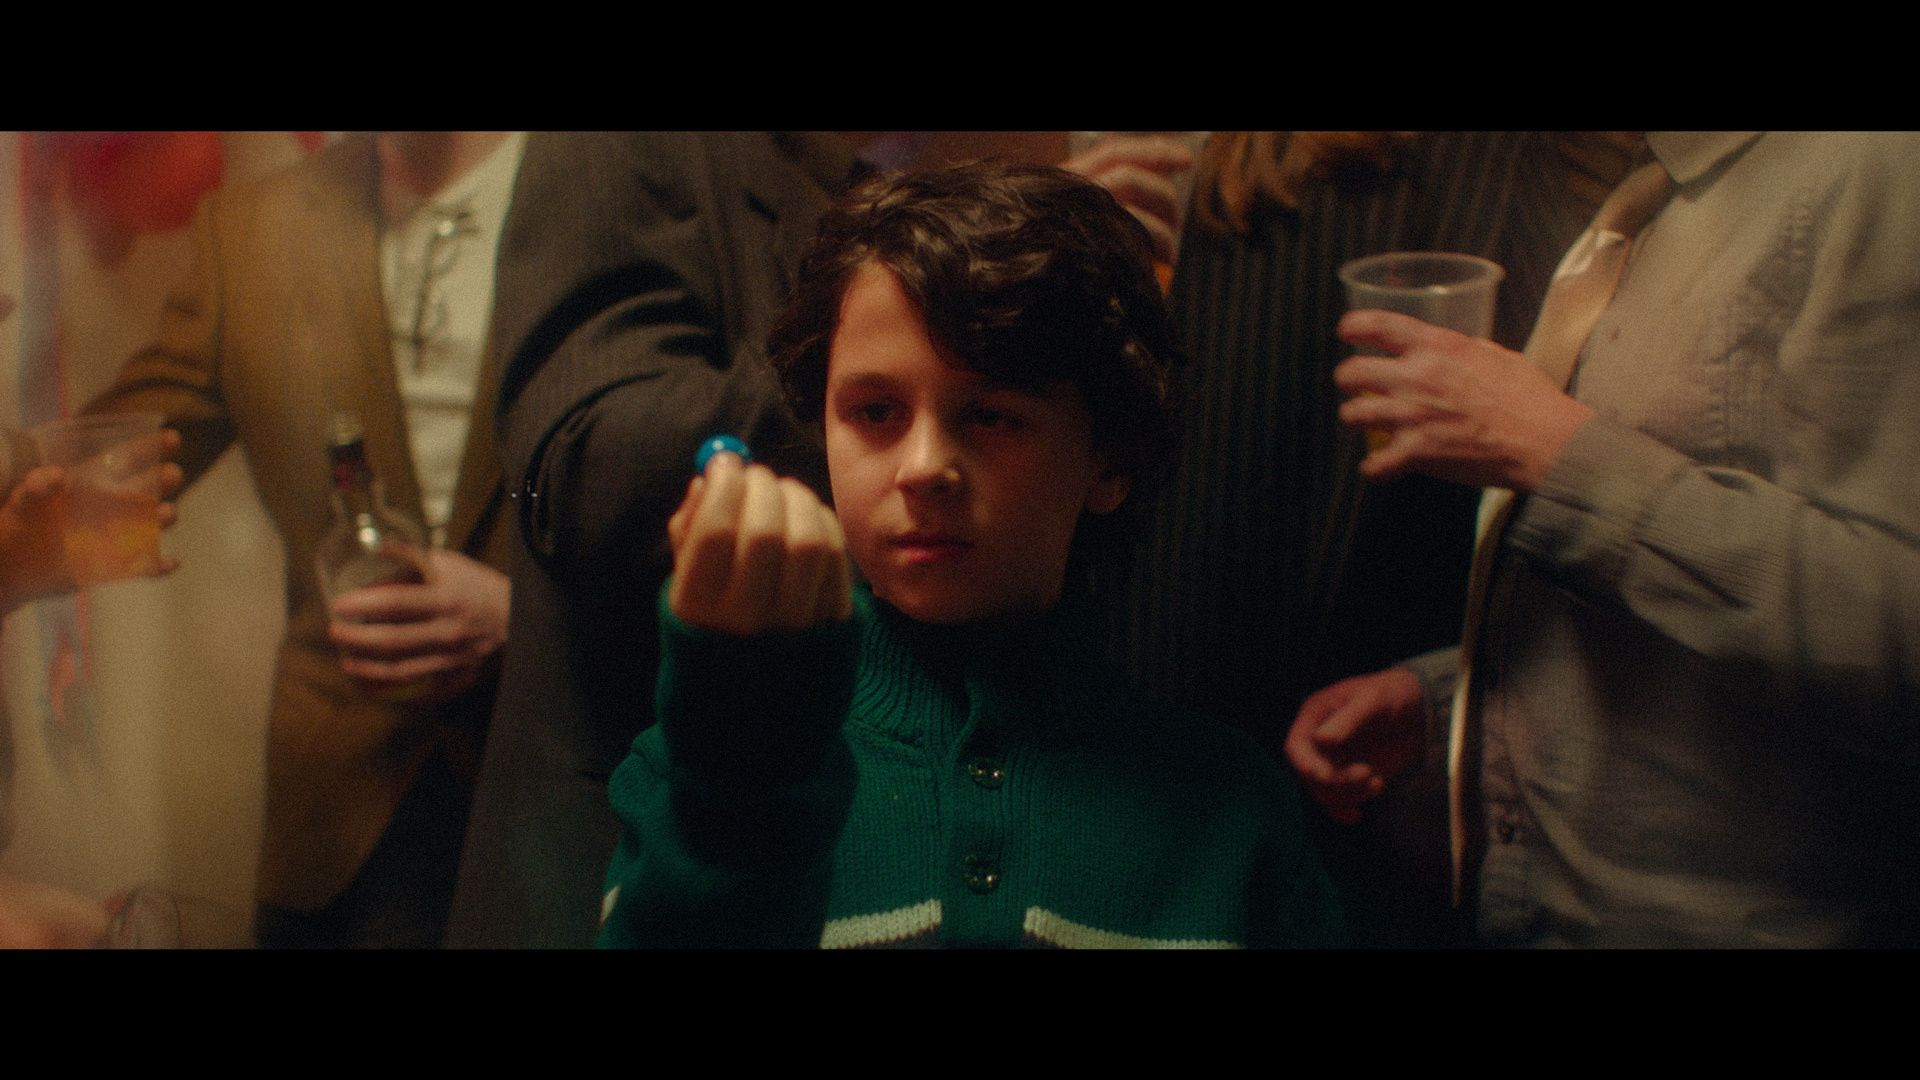 young boy holding bubblegum ball in the middle of raging party for TV series La Loi C'est La Loi filmed by Les Gamins for TV5 Unis